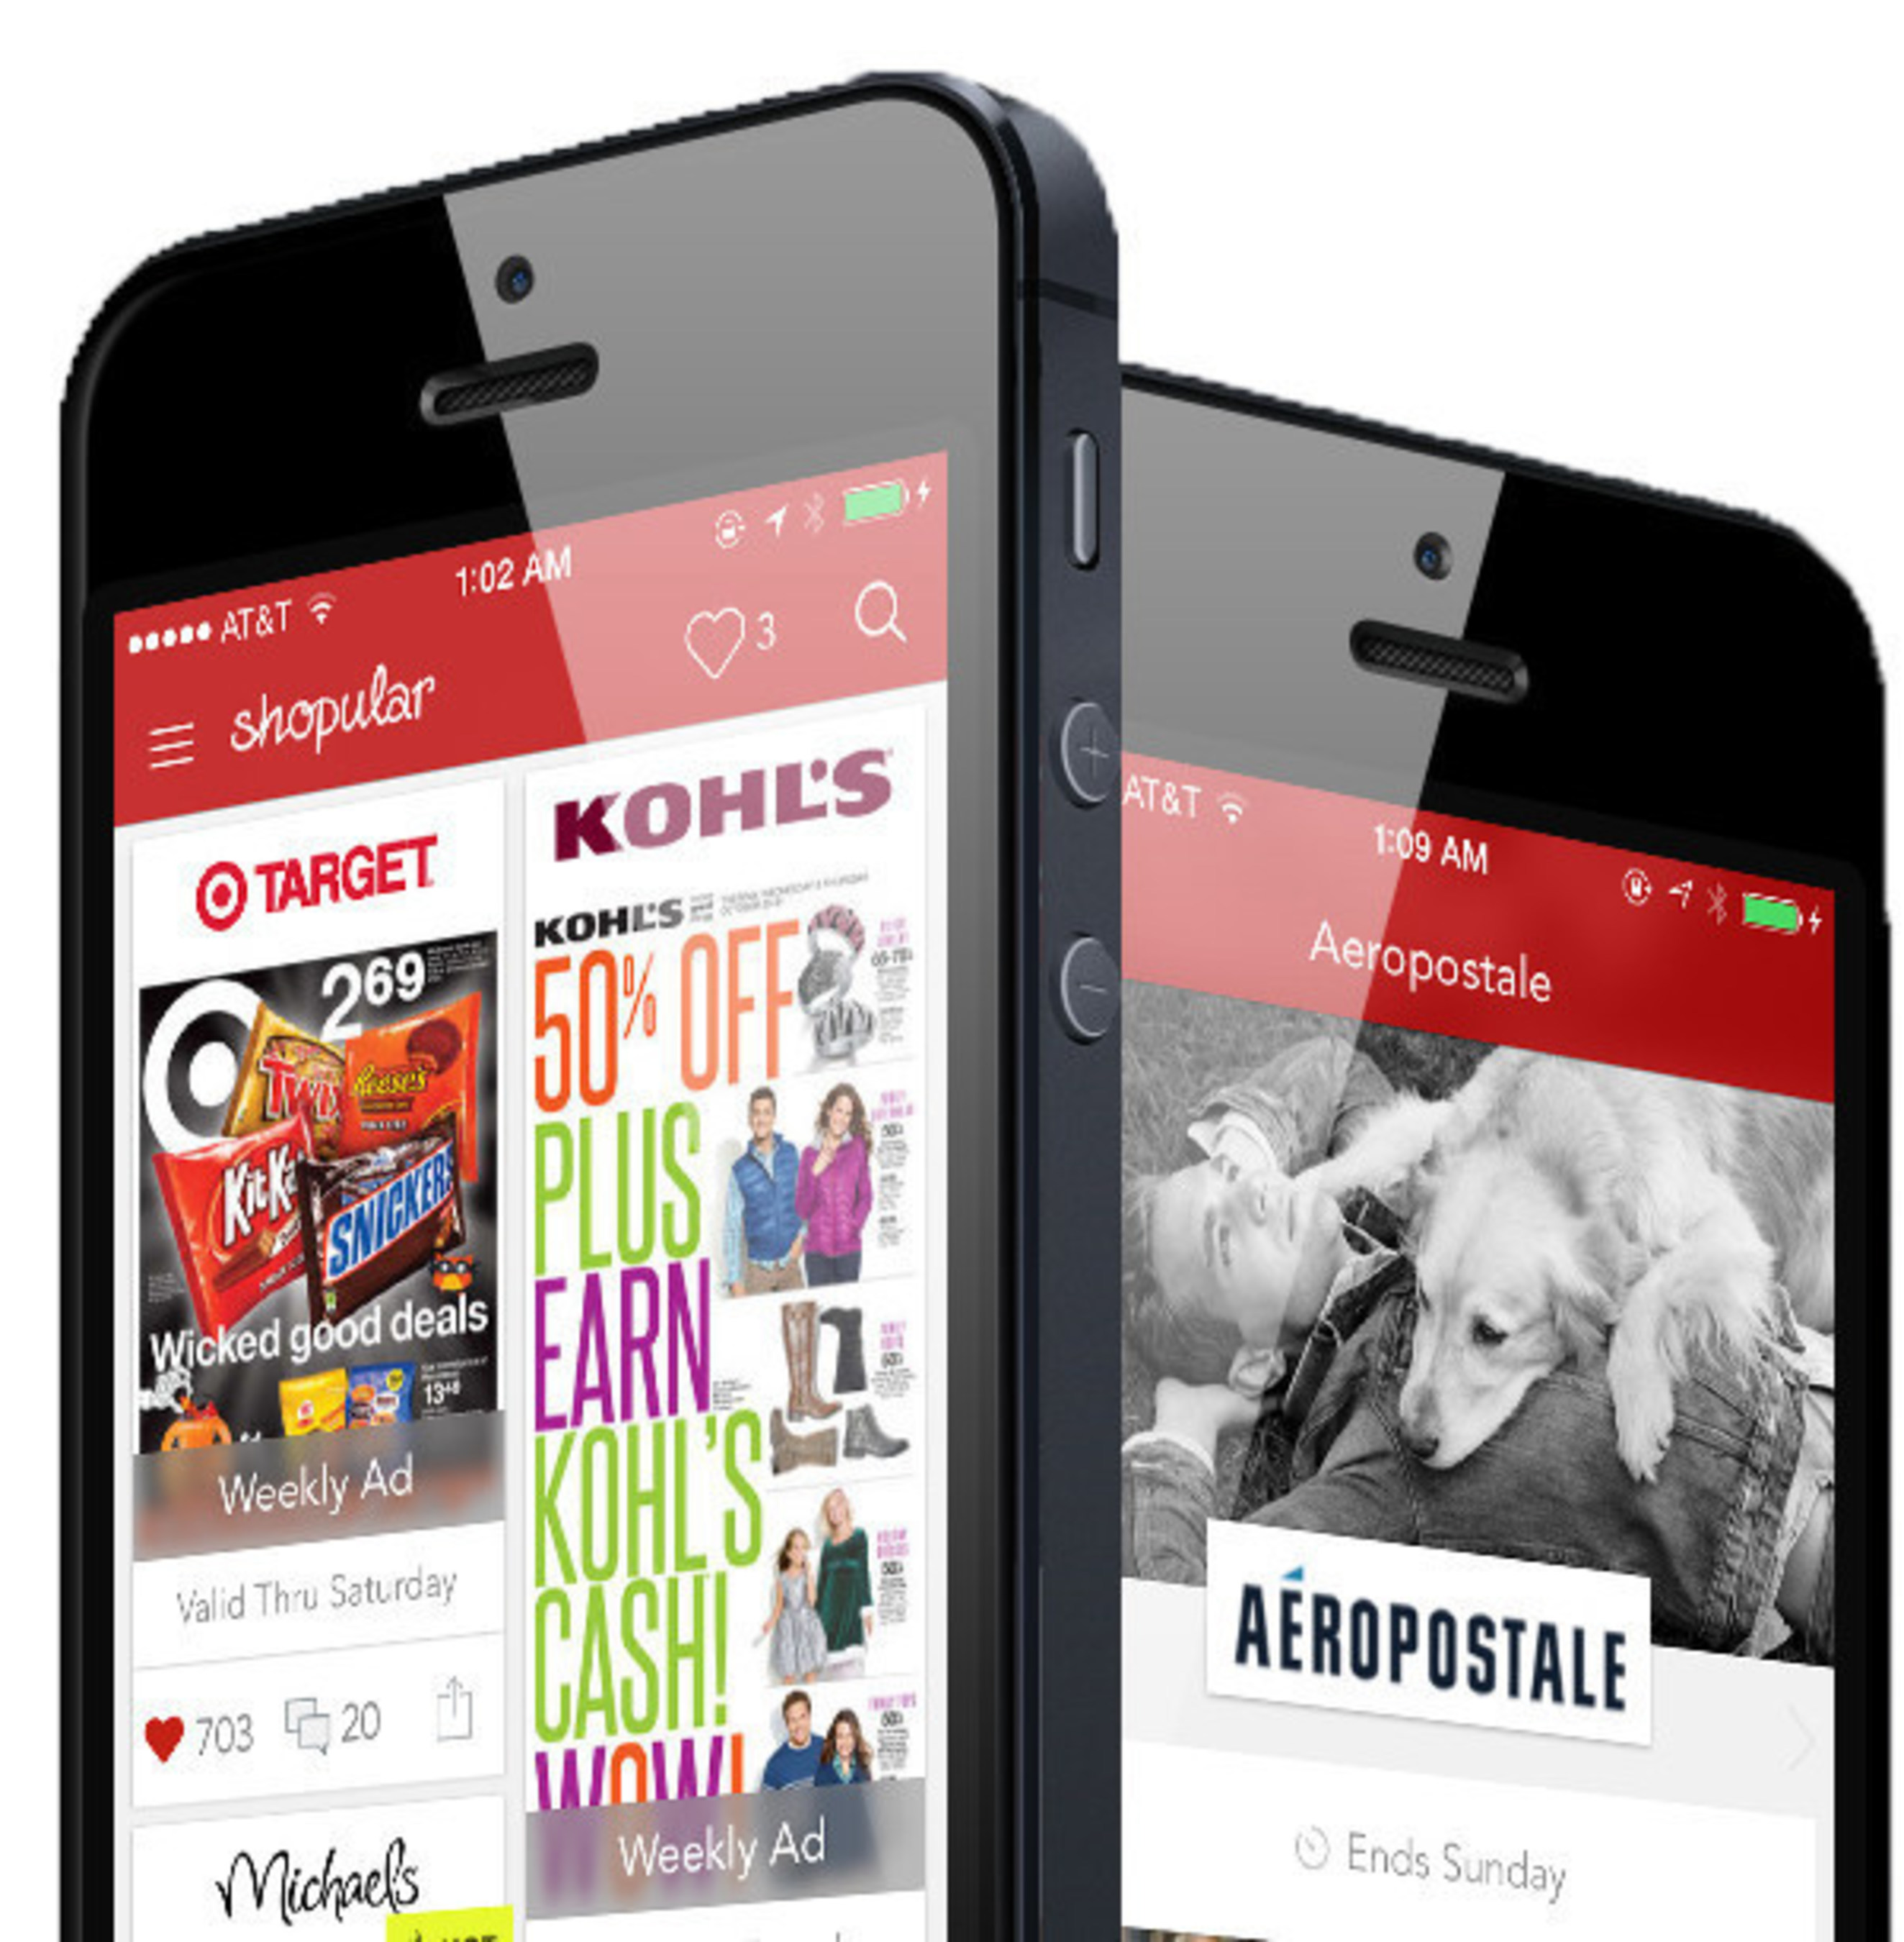 The Shopular app sends geo-targeted retail deal alerts right to the consumer's smartphone - for all of their favorite brand stores.